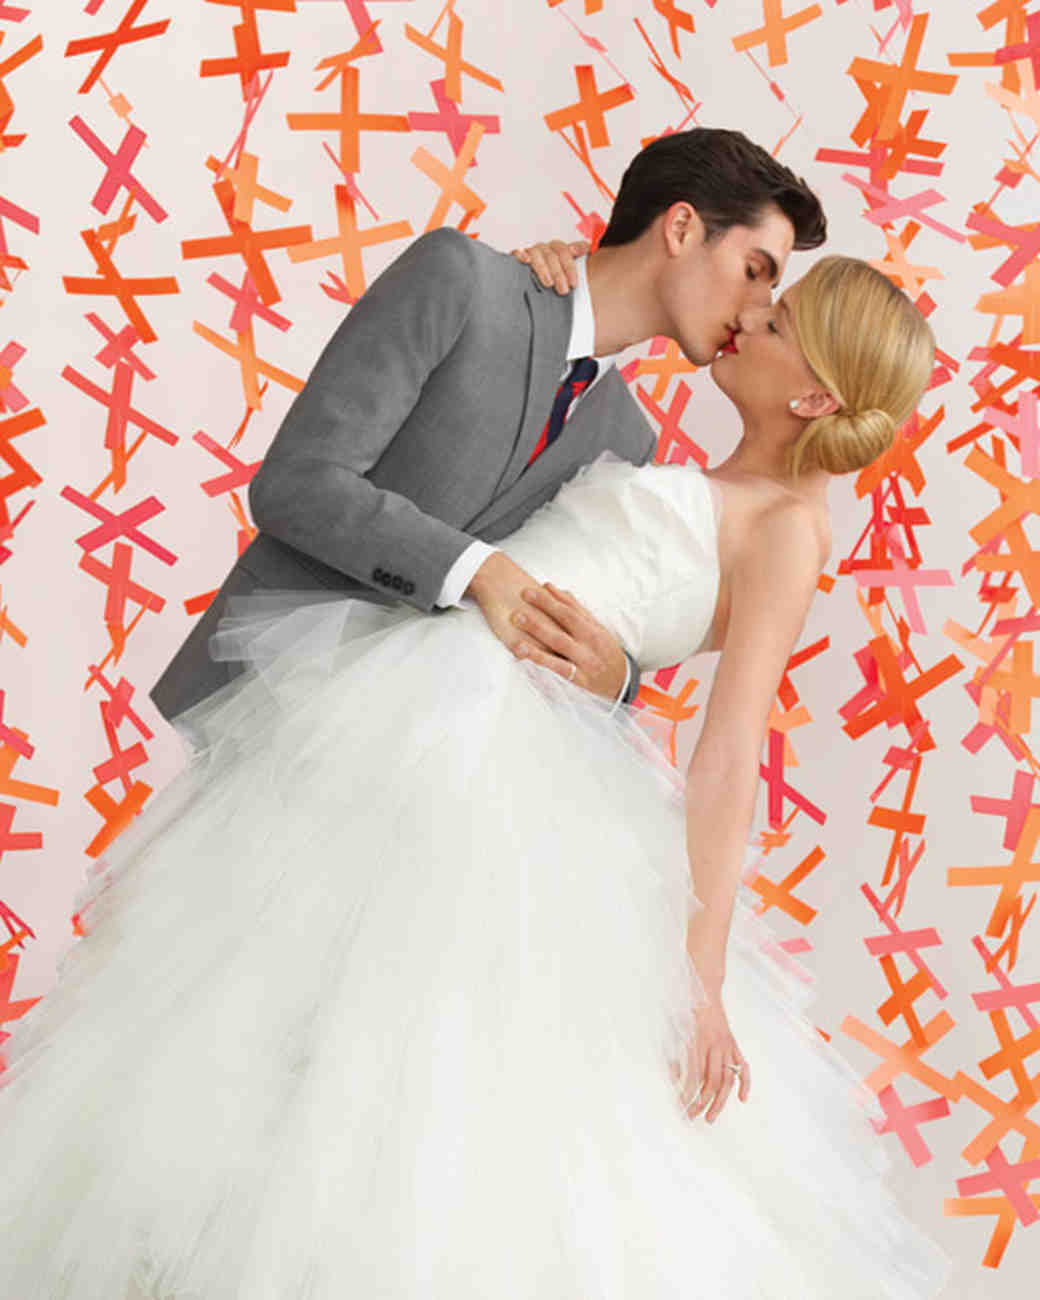 Creative kiss wedding ideas martha stewart weddings junglespirit Image collections